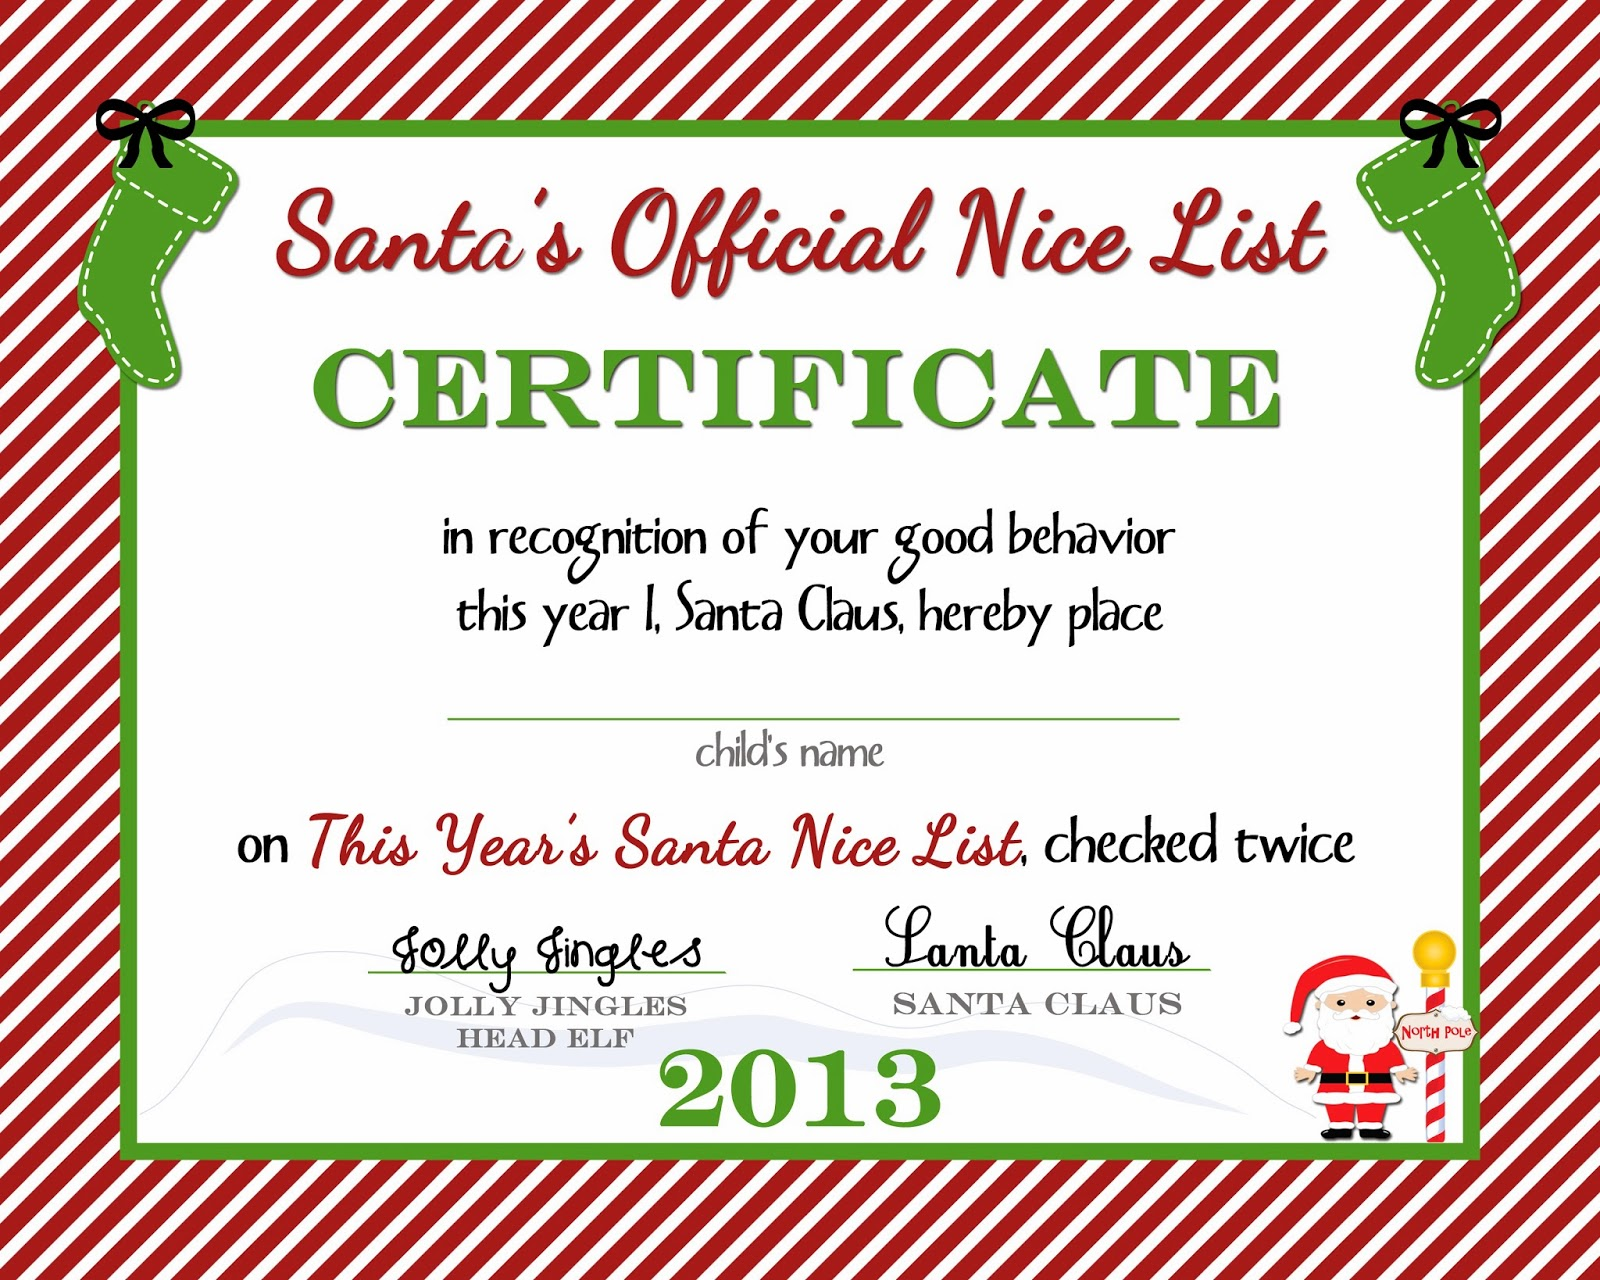 doc christmas gift certificate template word christmas christmas certificate templates christmas certificates christmas gift certificate template word